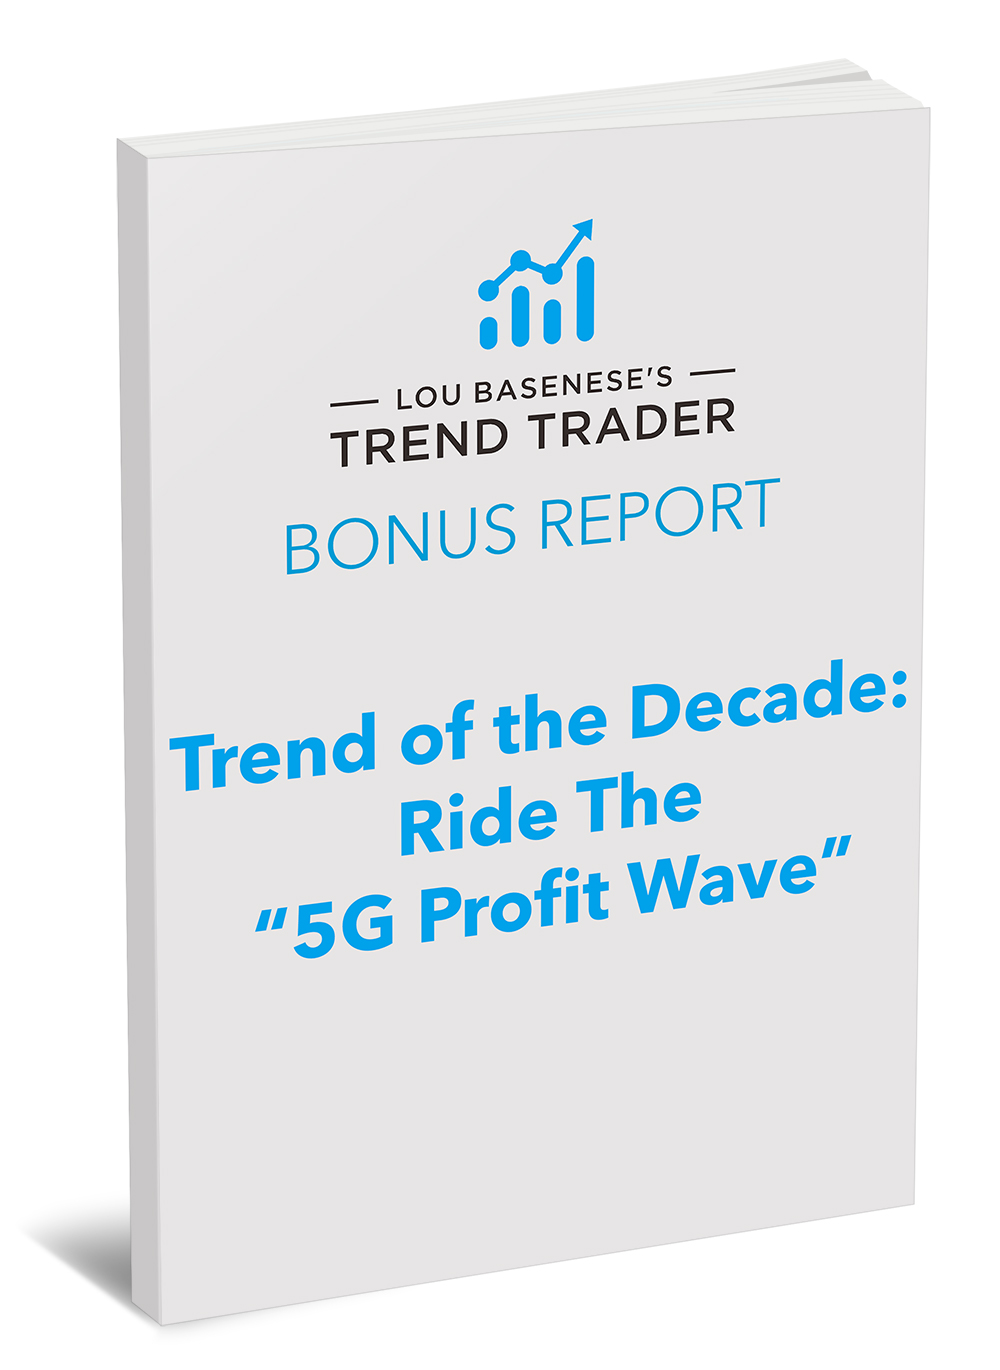 Trend of the Decade - Ride the 5G Profit Wave